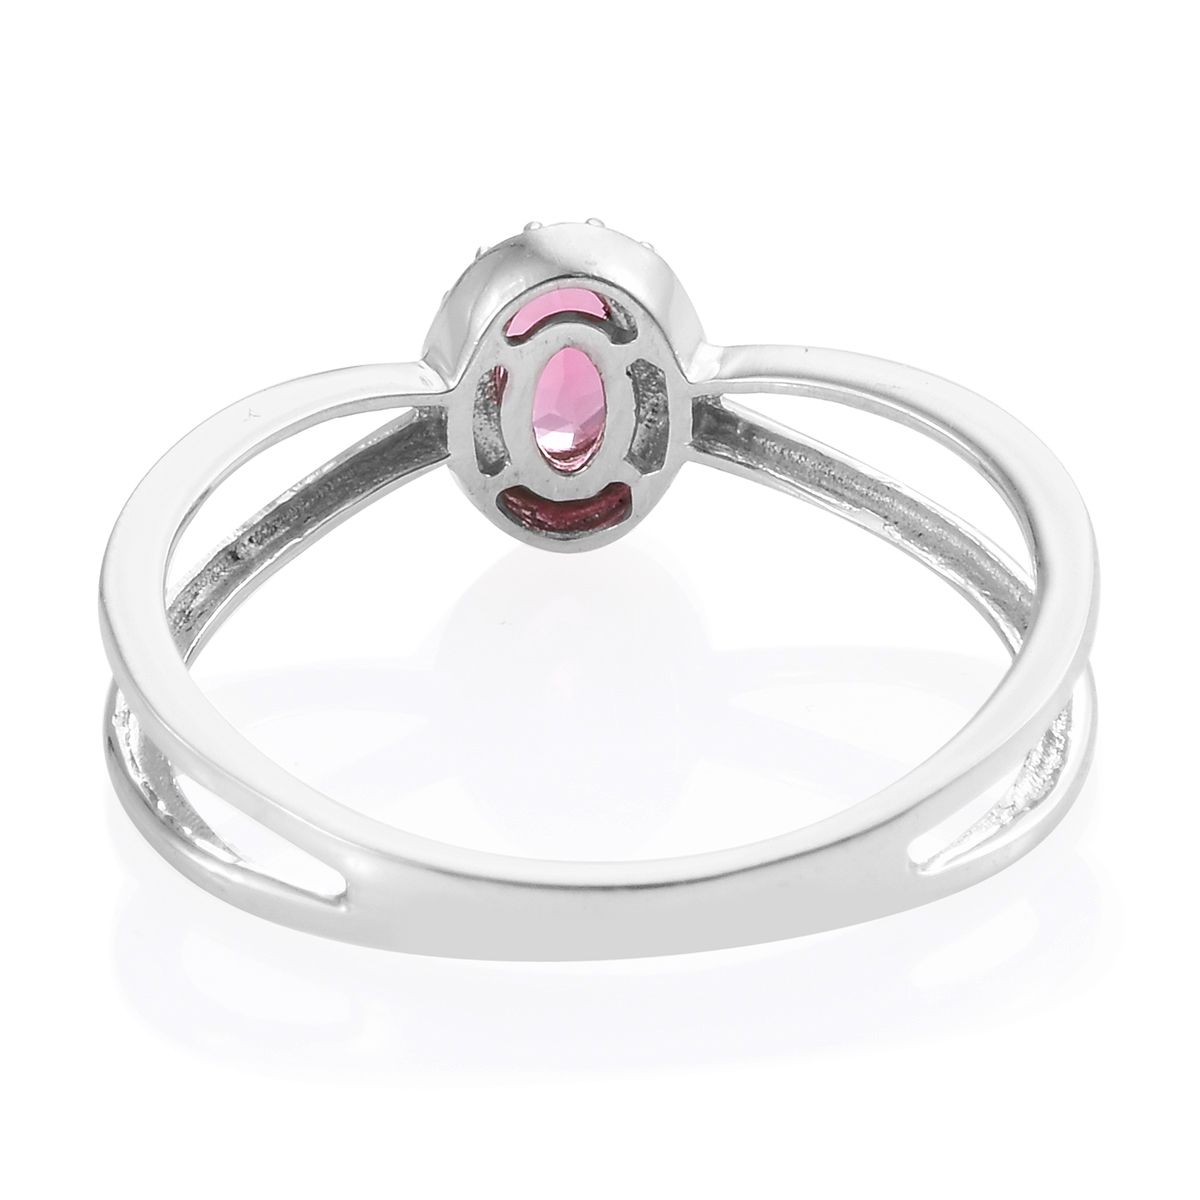 Morro Redondo Pink Tourmaline Split Ring in Platinum Over Sterling Silver (Size 7.0) 0.45 ctw